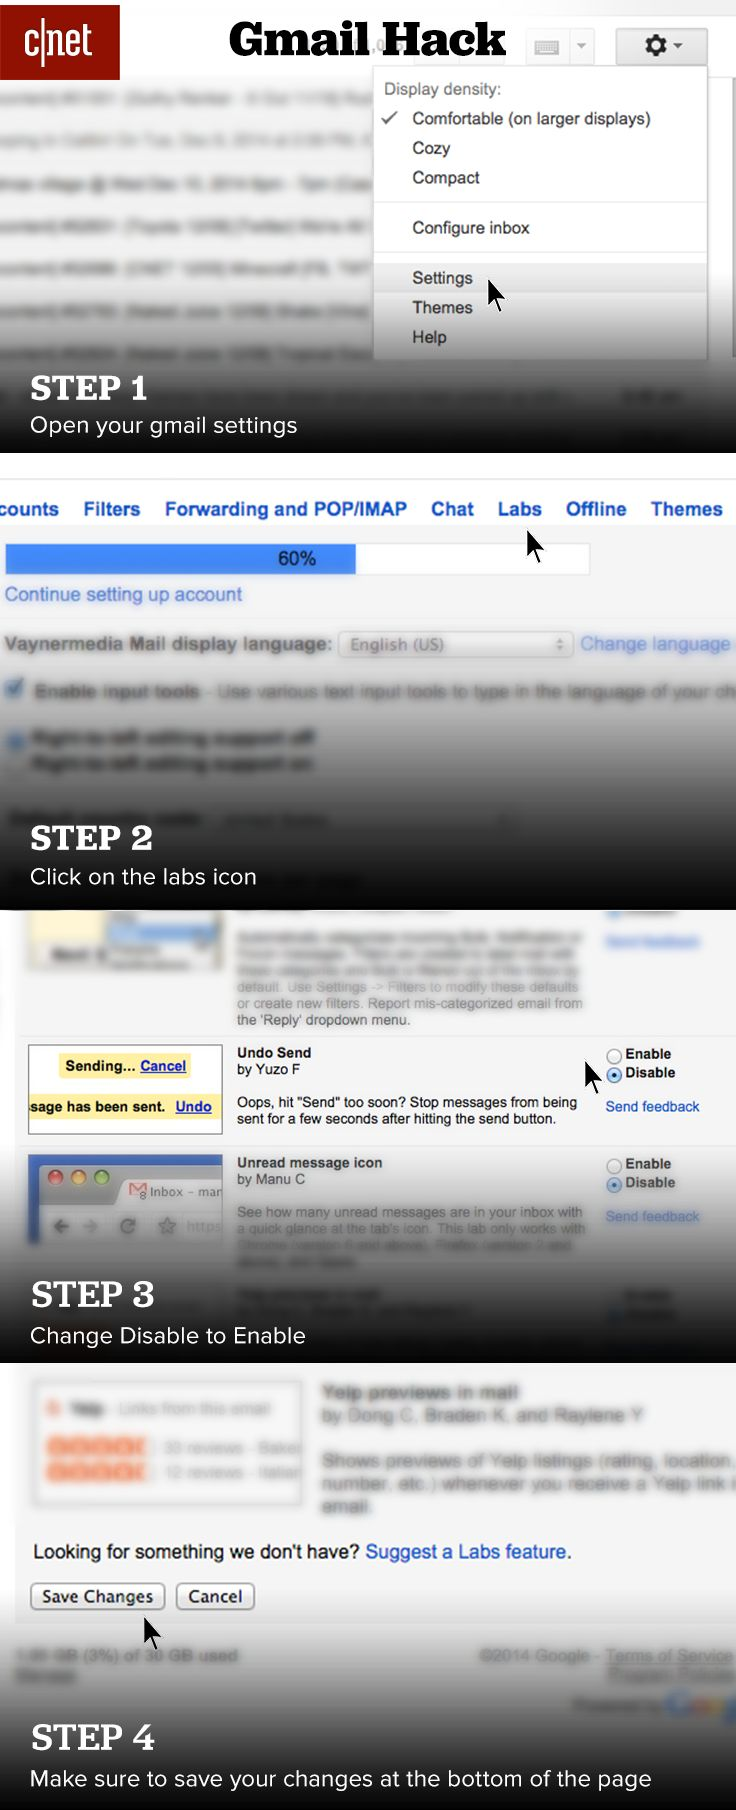 629 best tutorials diy images on pinterest android cleaning if youve ever sent an email to someone you didnt mean to then this gmail tip is for you give yourself a chance to take it back by enabling undo send in solutioingenieria Image collections